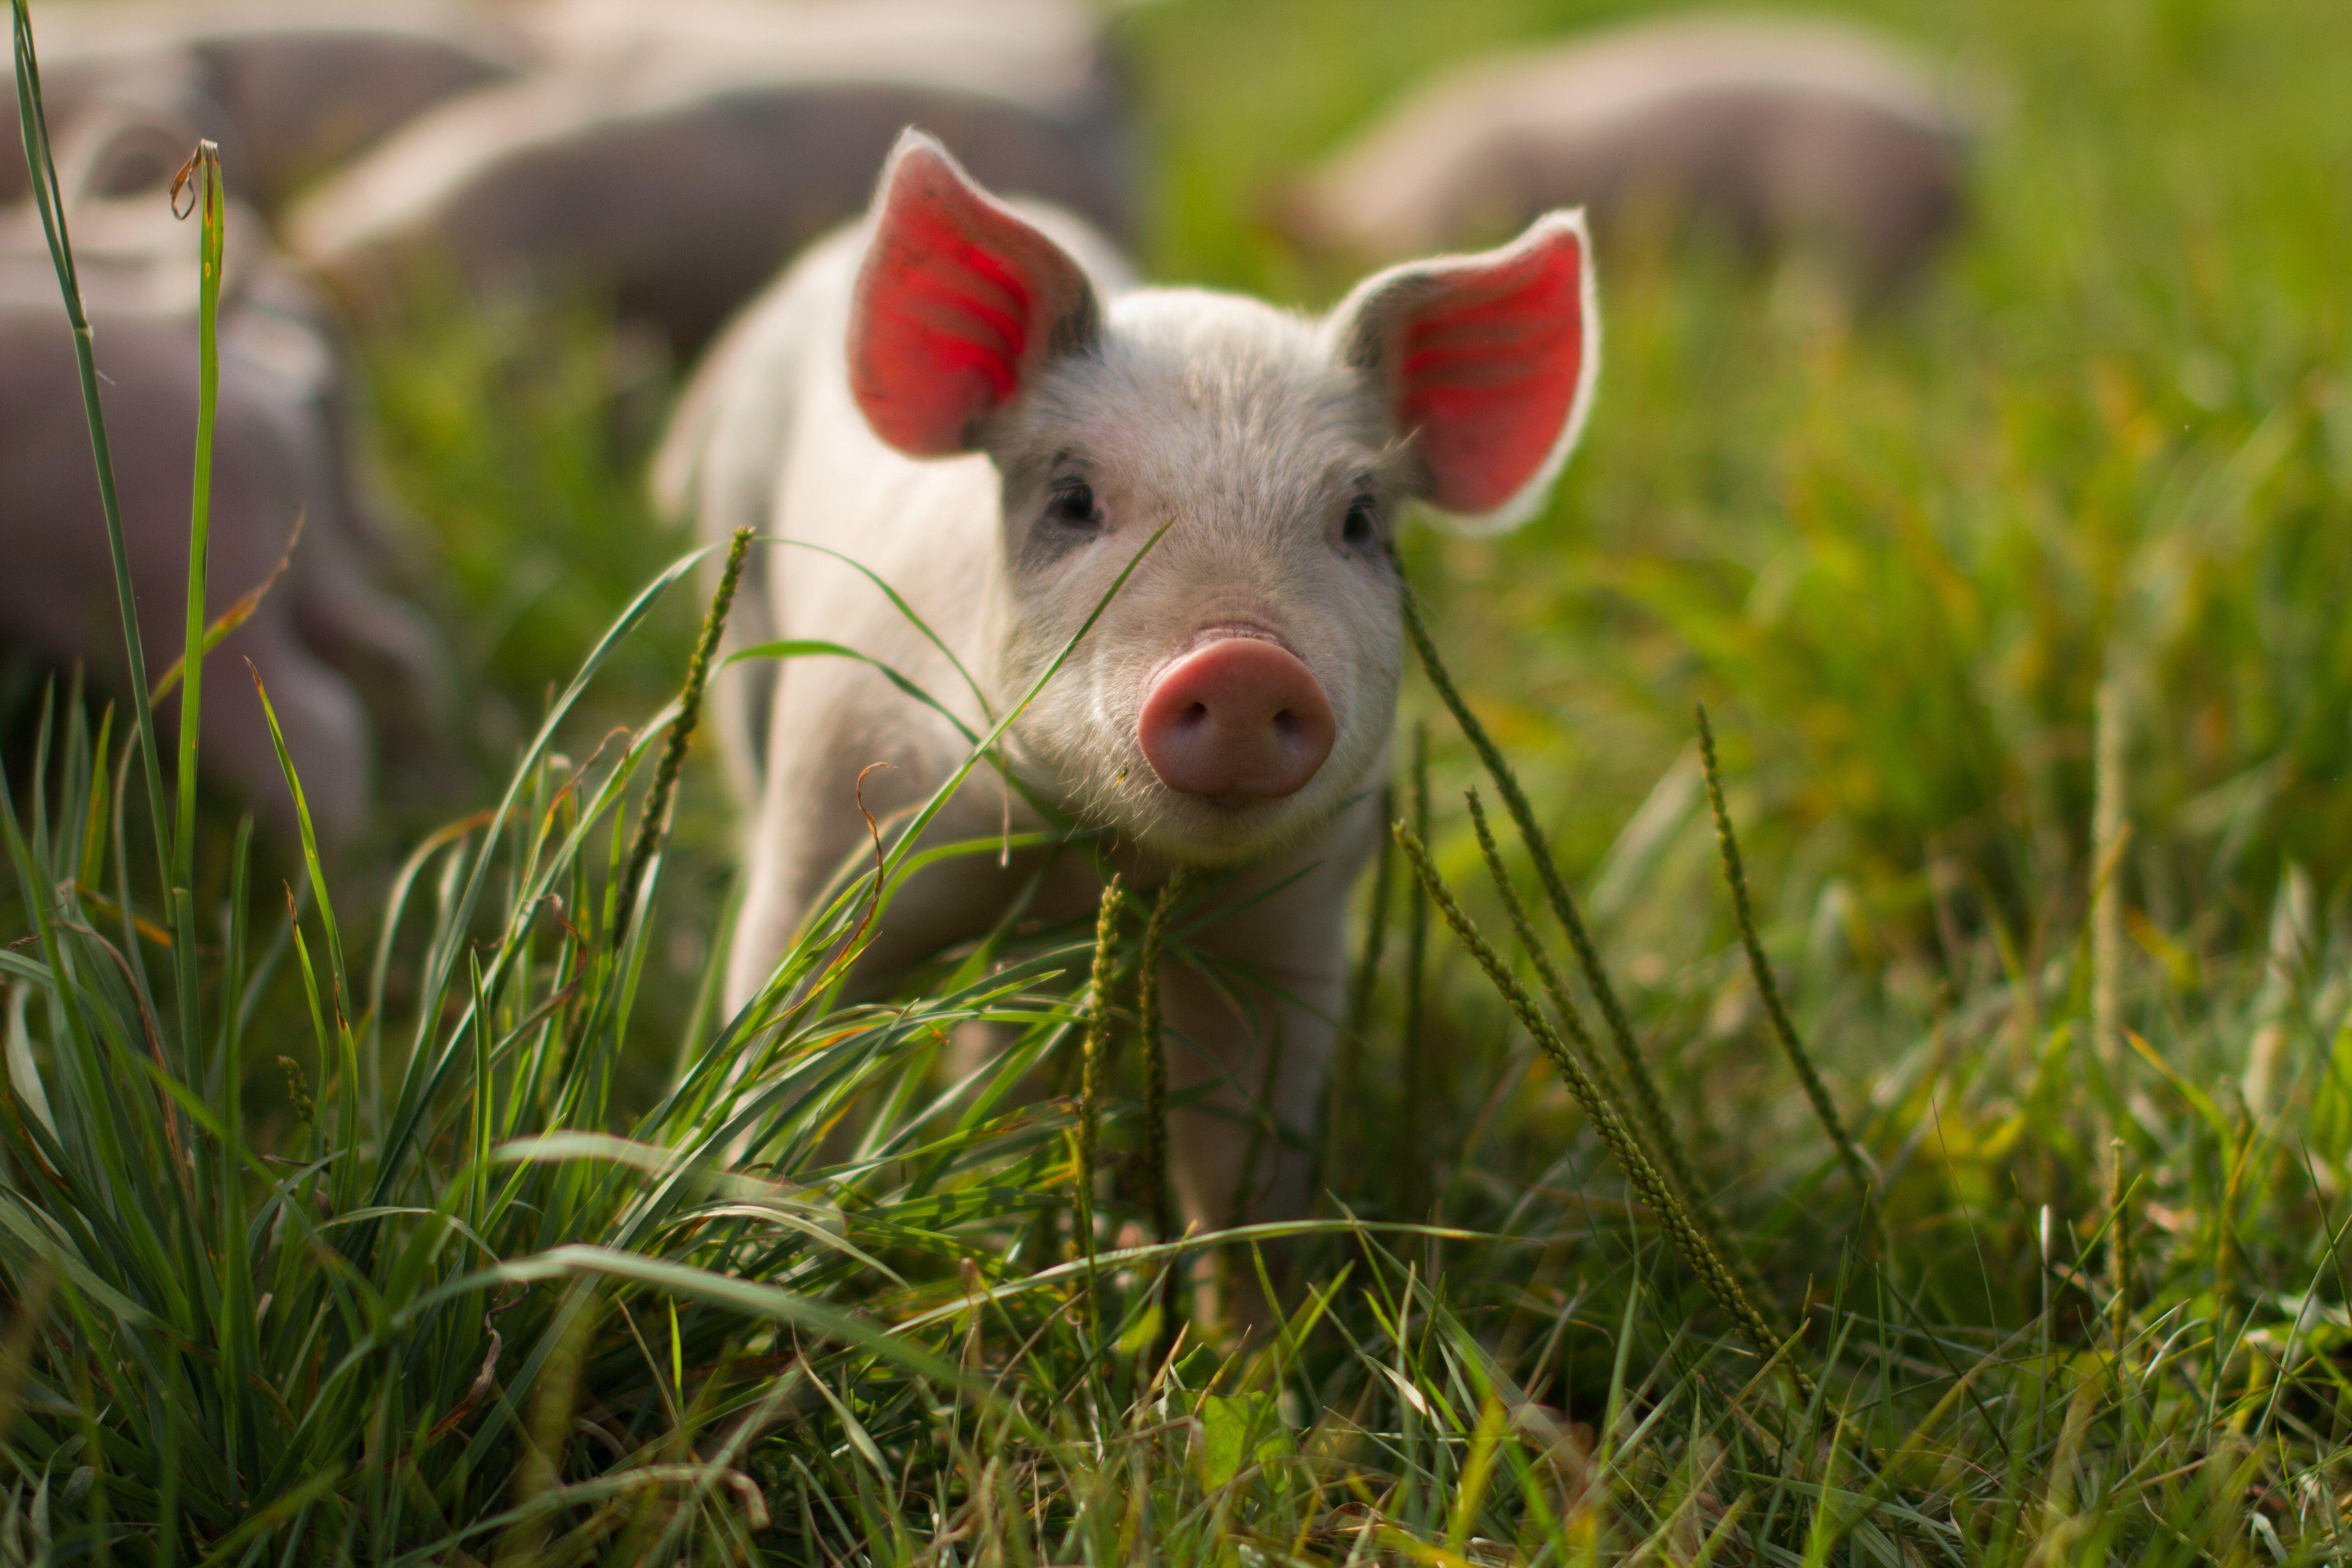 Baby Pigs Wallpapers 5184x3456